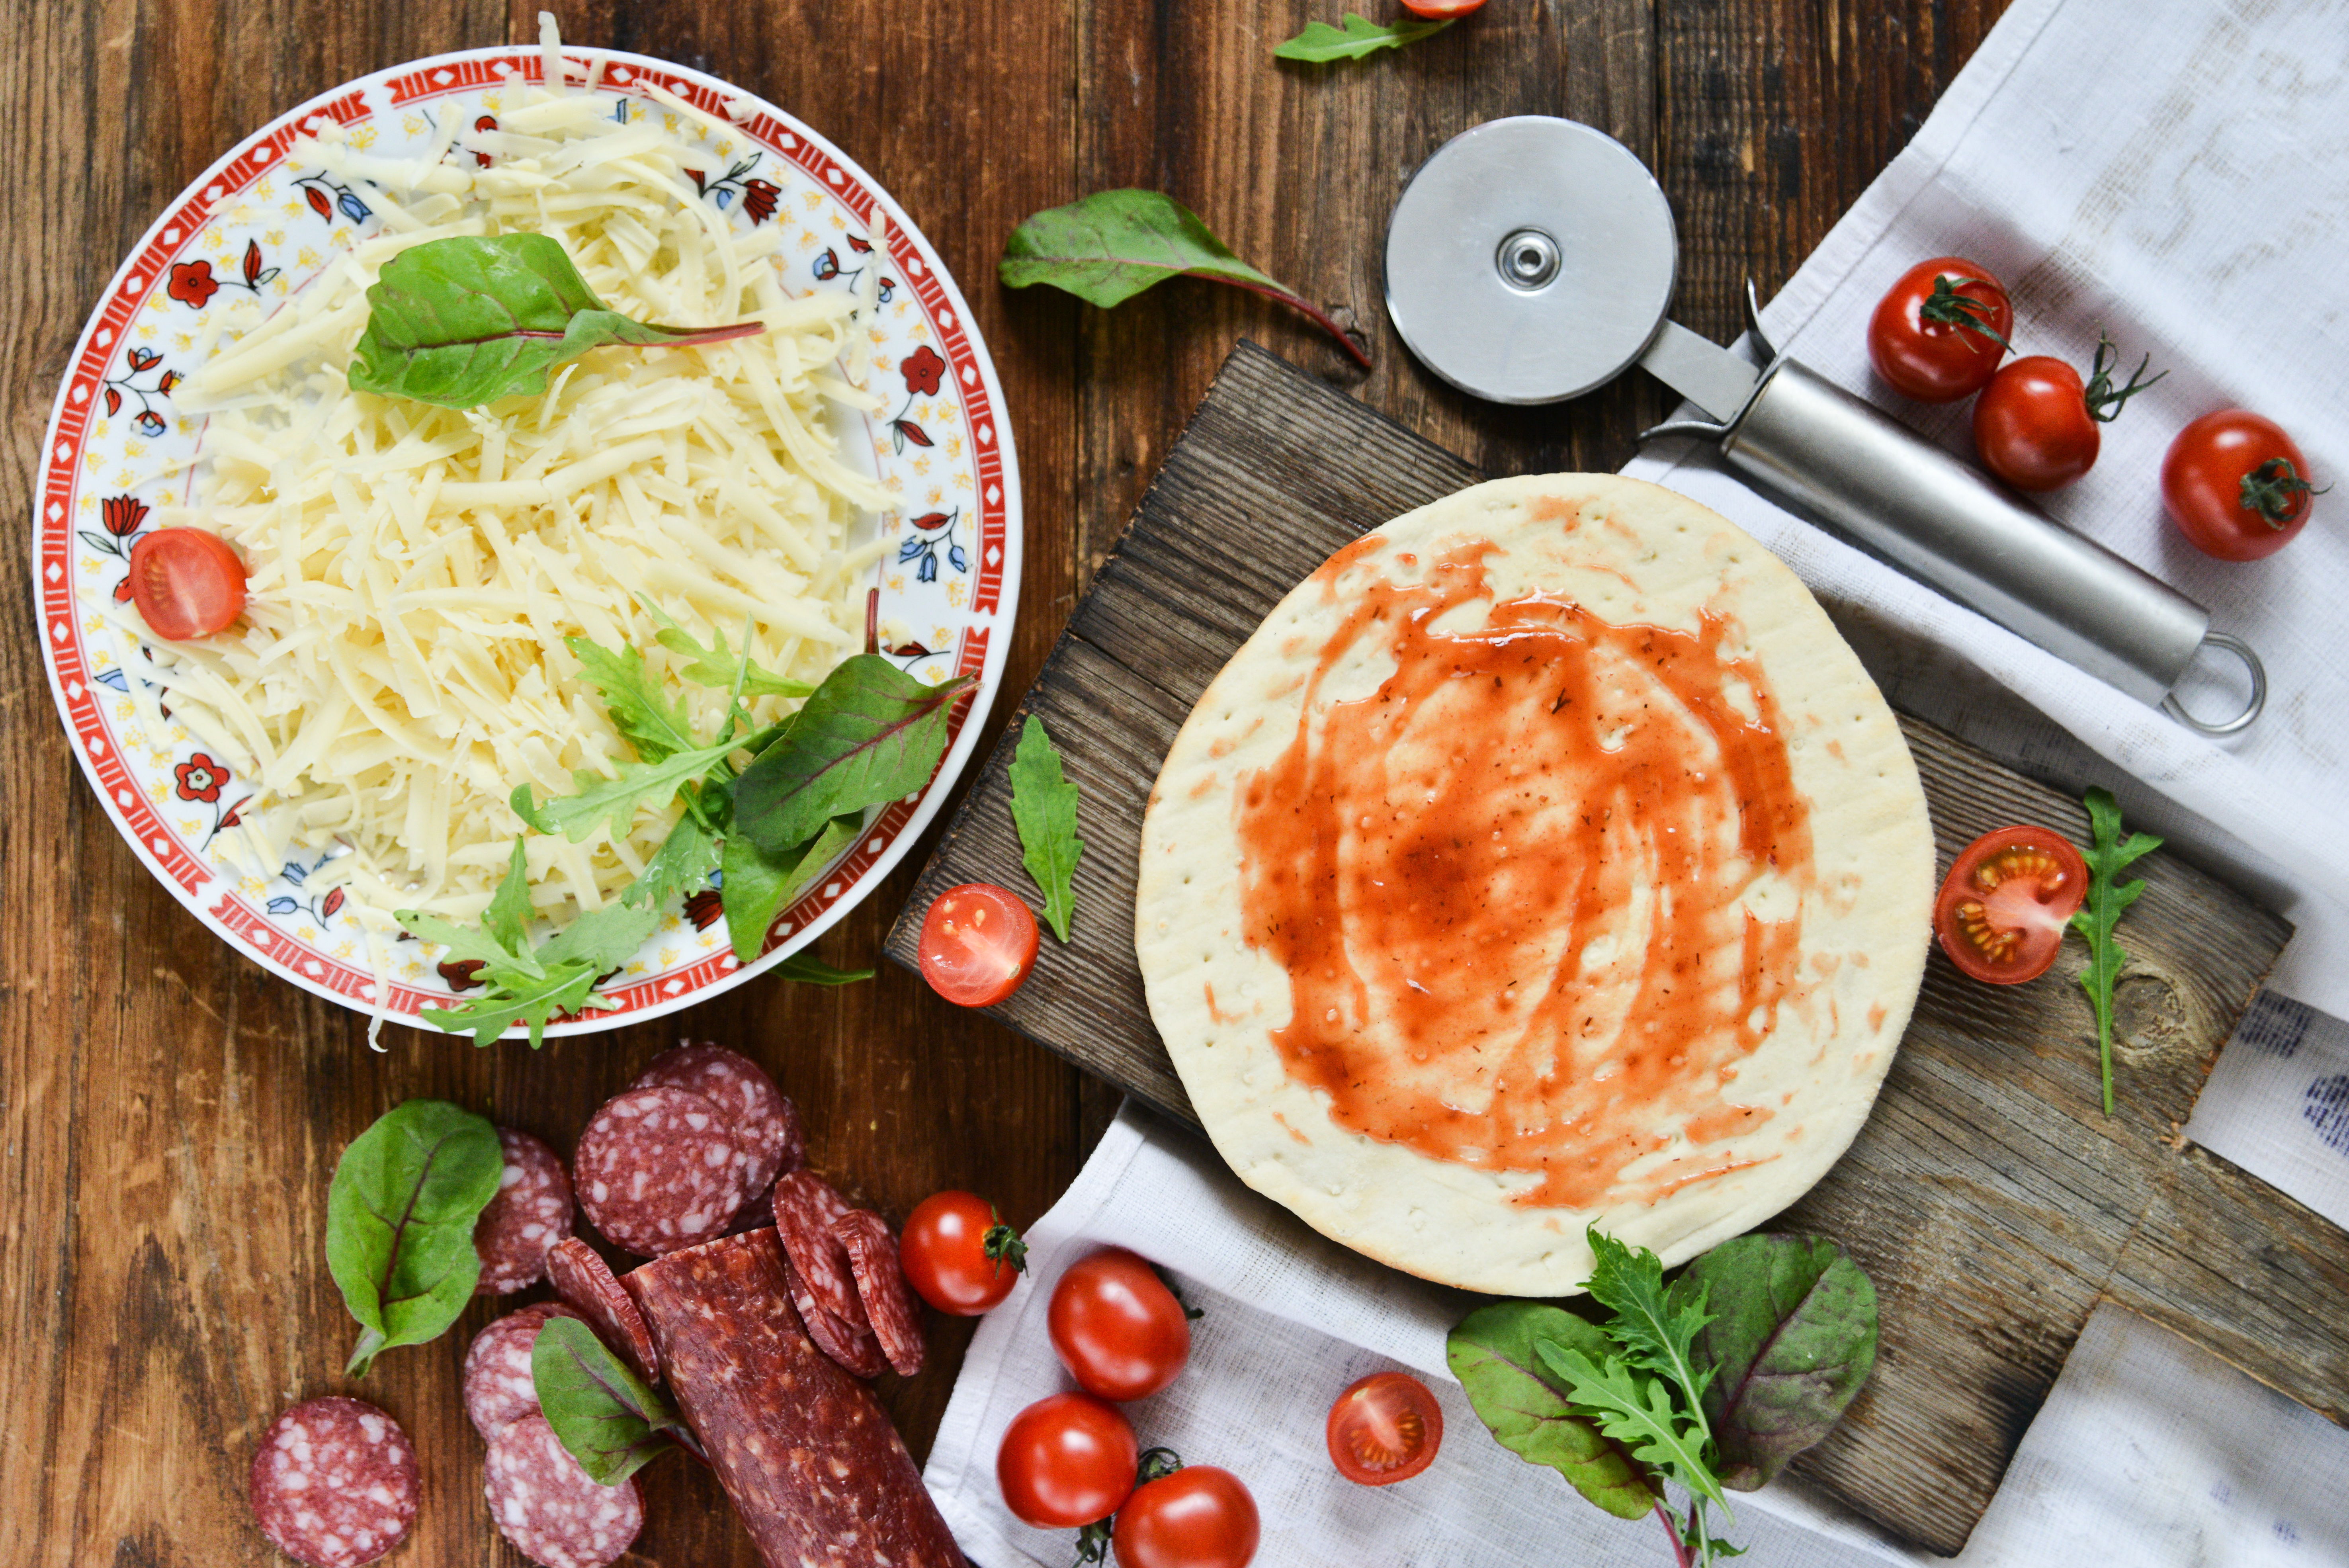 Ingredients for Pizza: basis dough, salami sausage, cherry tomatoes, grated cheese, tomato paste, herbs and arugula. Natural Wooden Background With Linen Napkin and Knife For Pizza